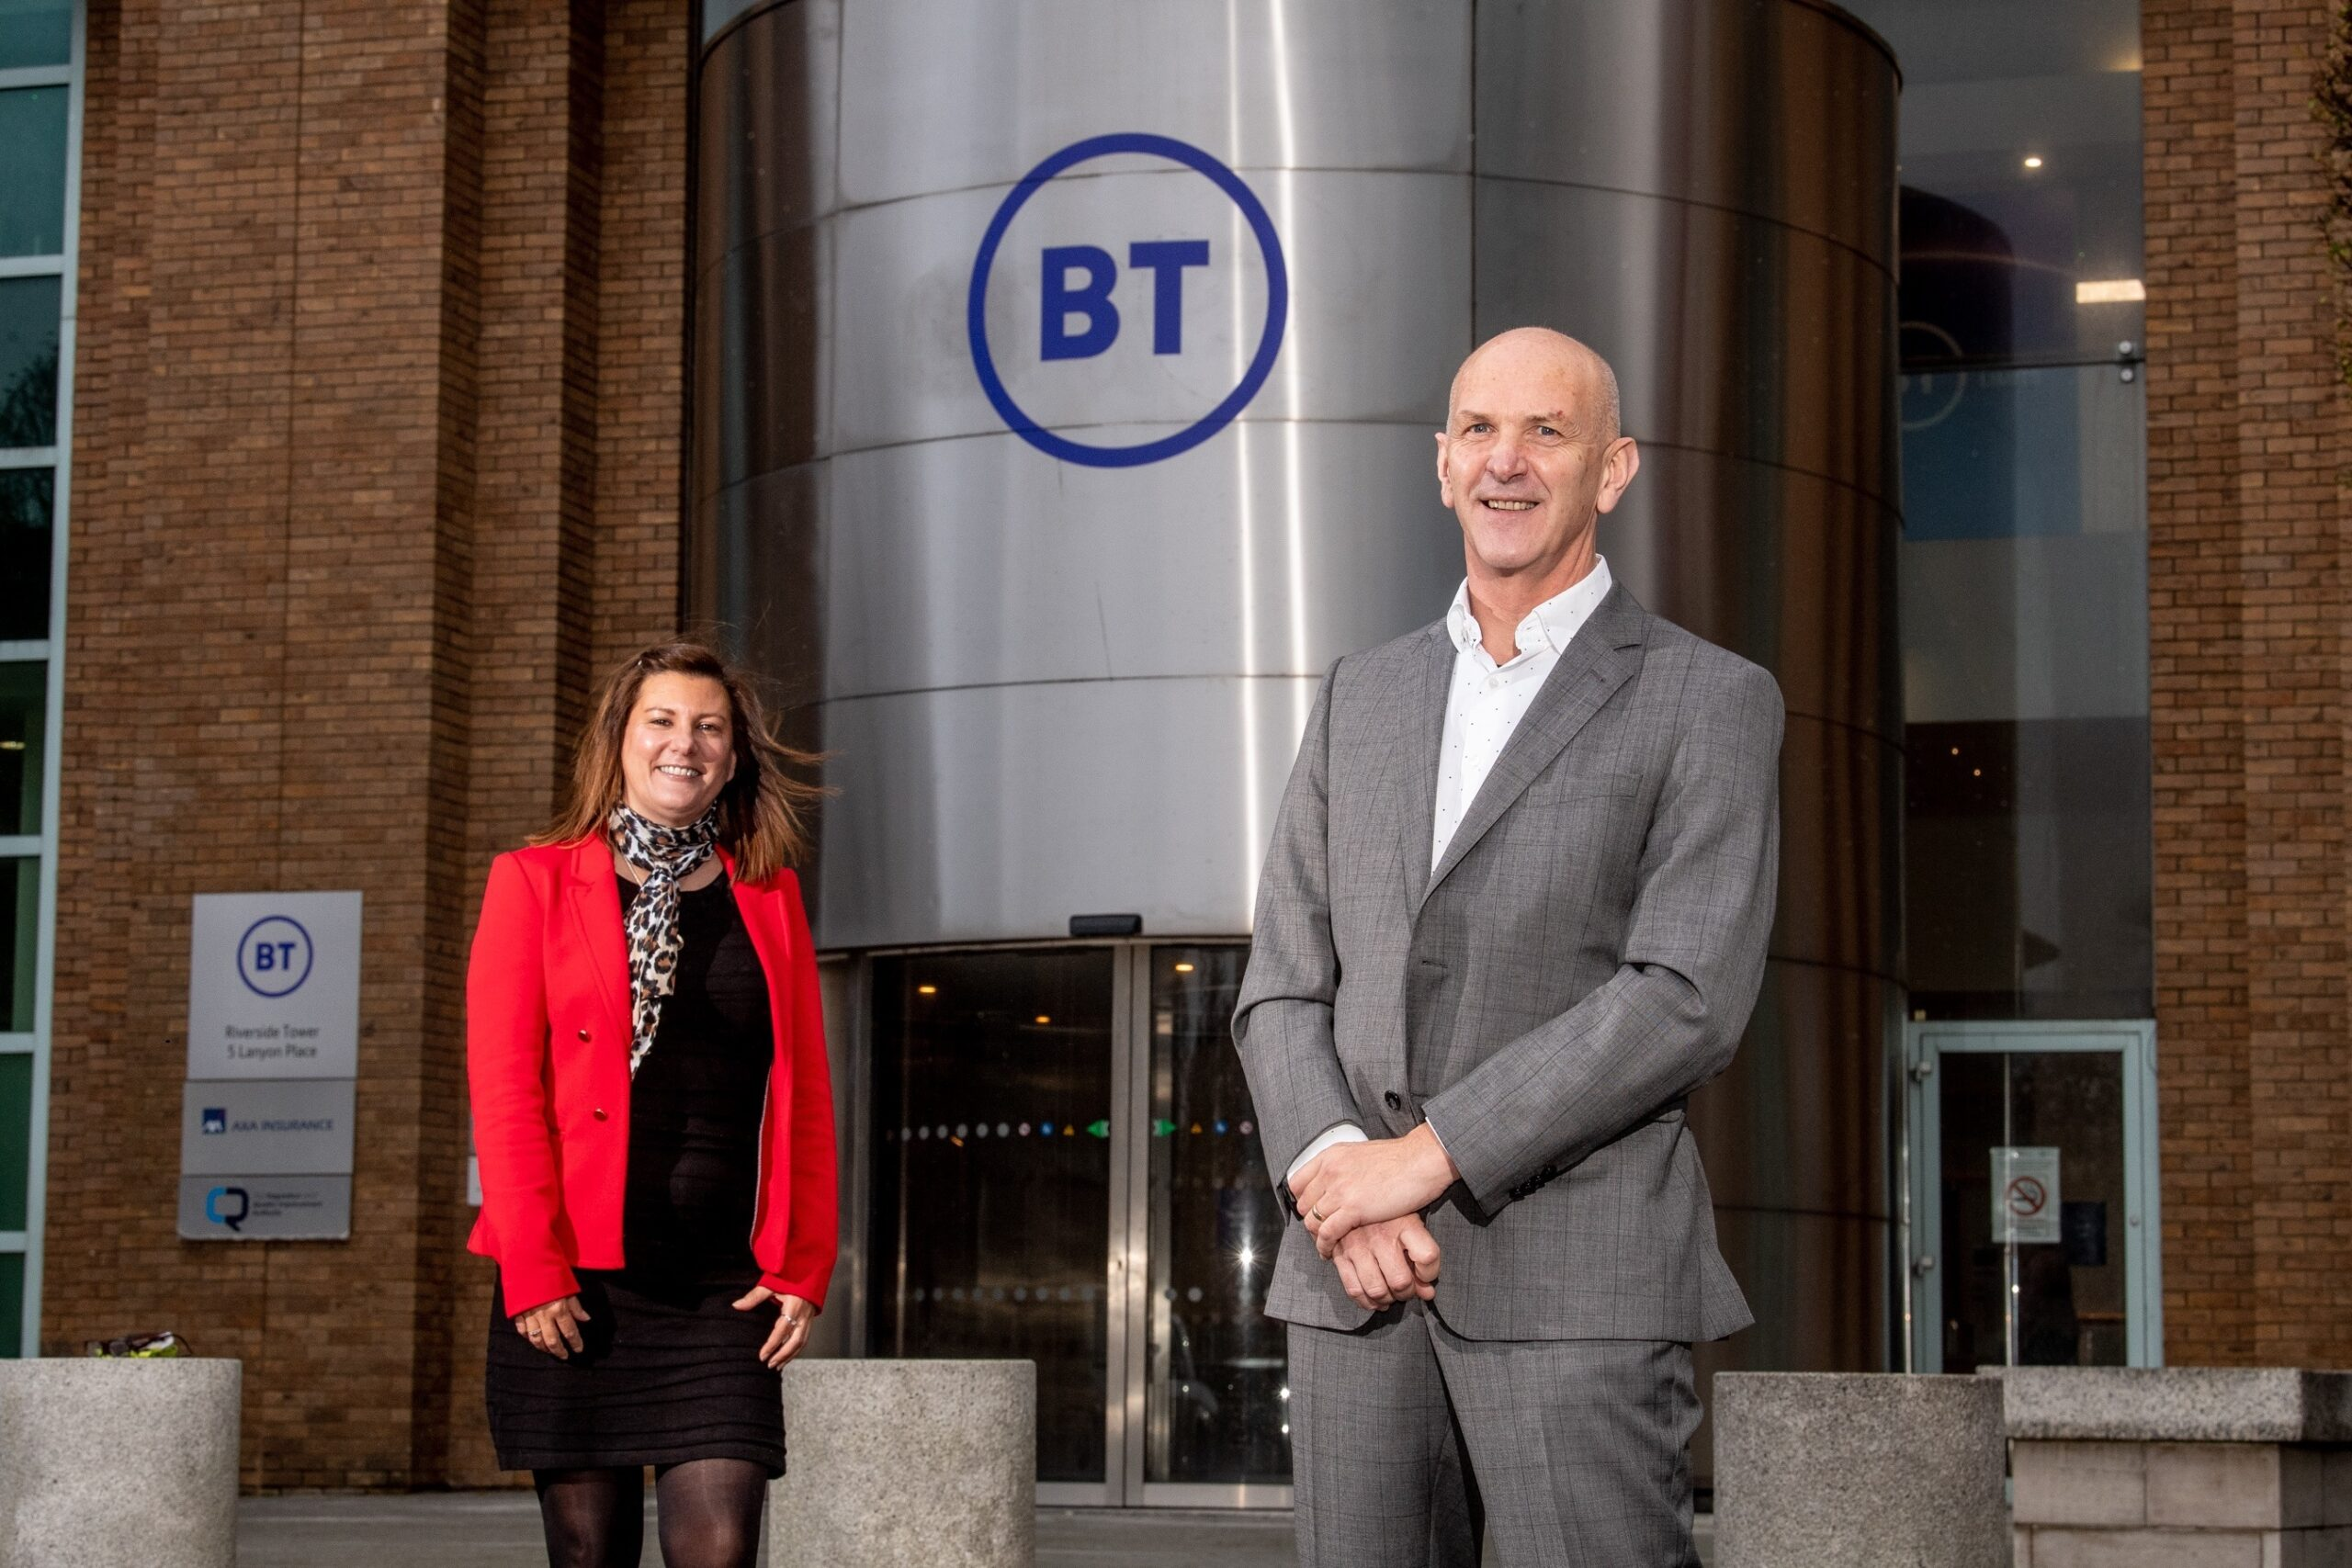 BT to establish Northern Ireland Legal Hub with over £2m investment and up to 30 jobs - NI Freelance Copywriter - Content and Blog Writer Tall Paul Marketing